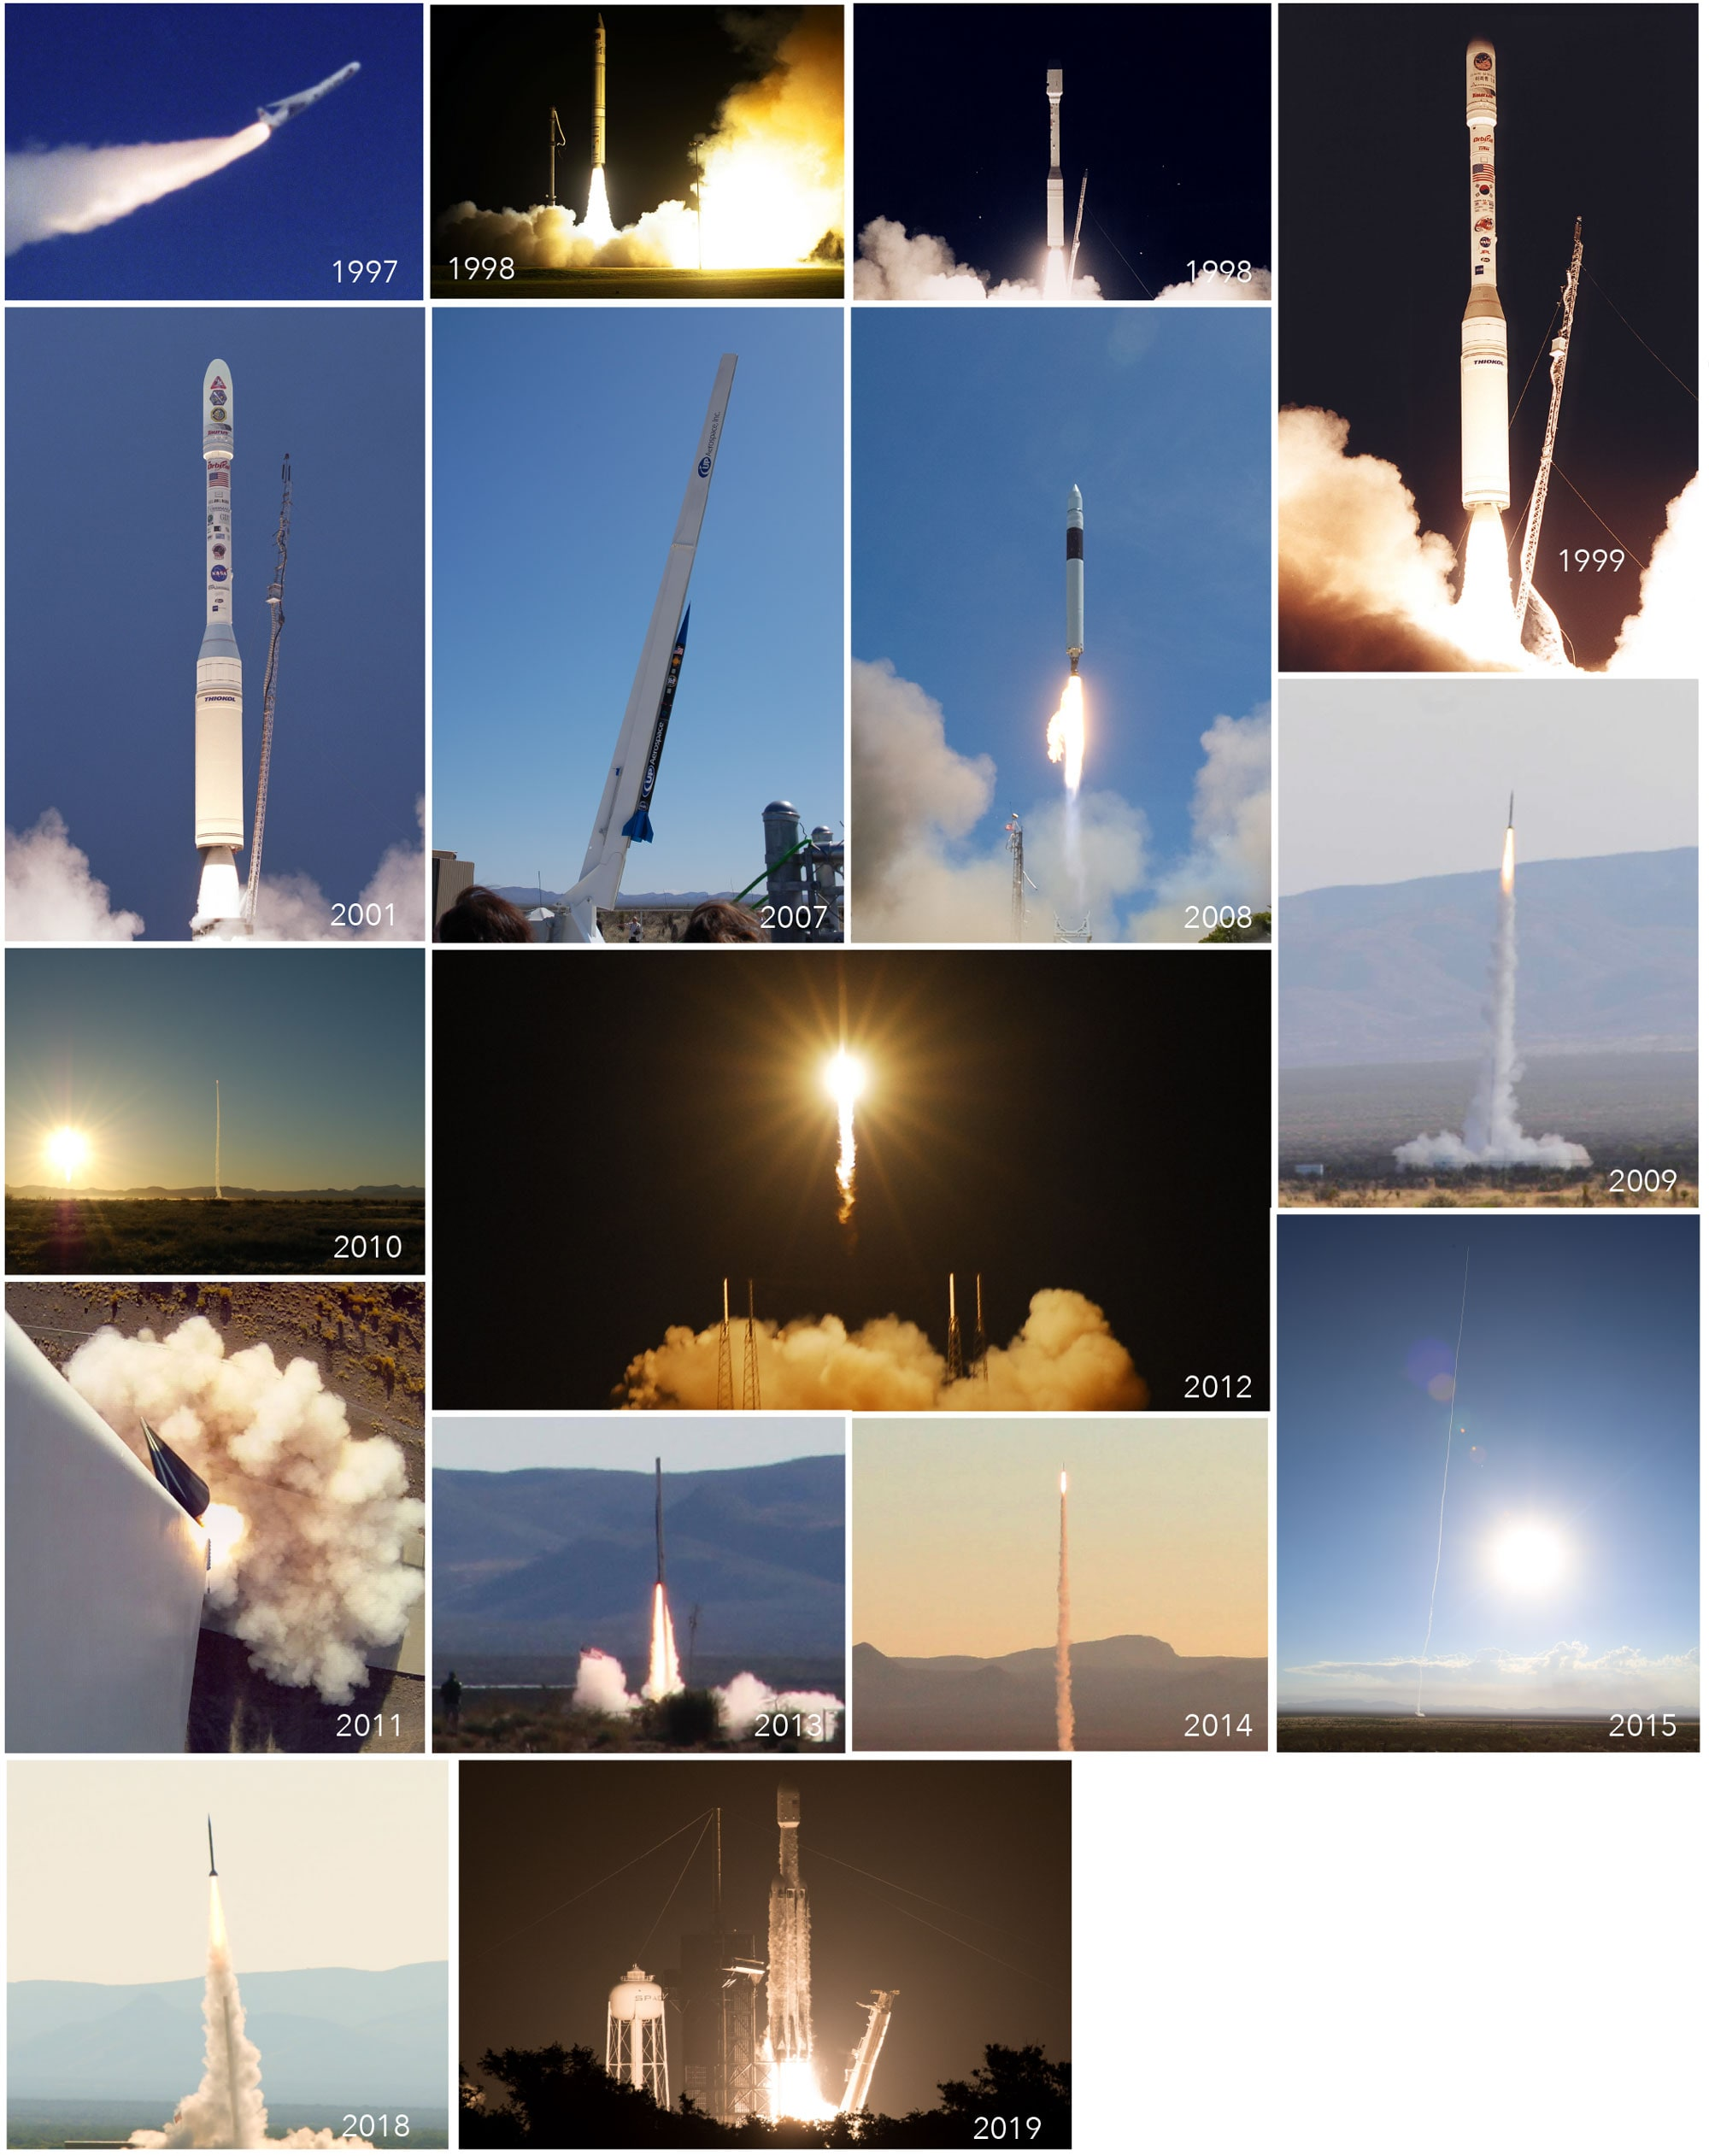 Celestis_launch_collage_2000.jpg